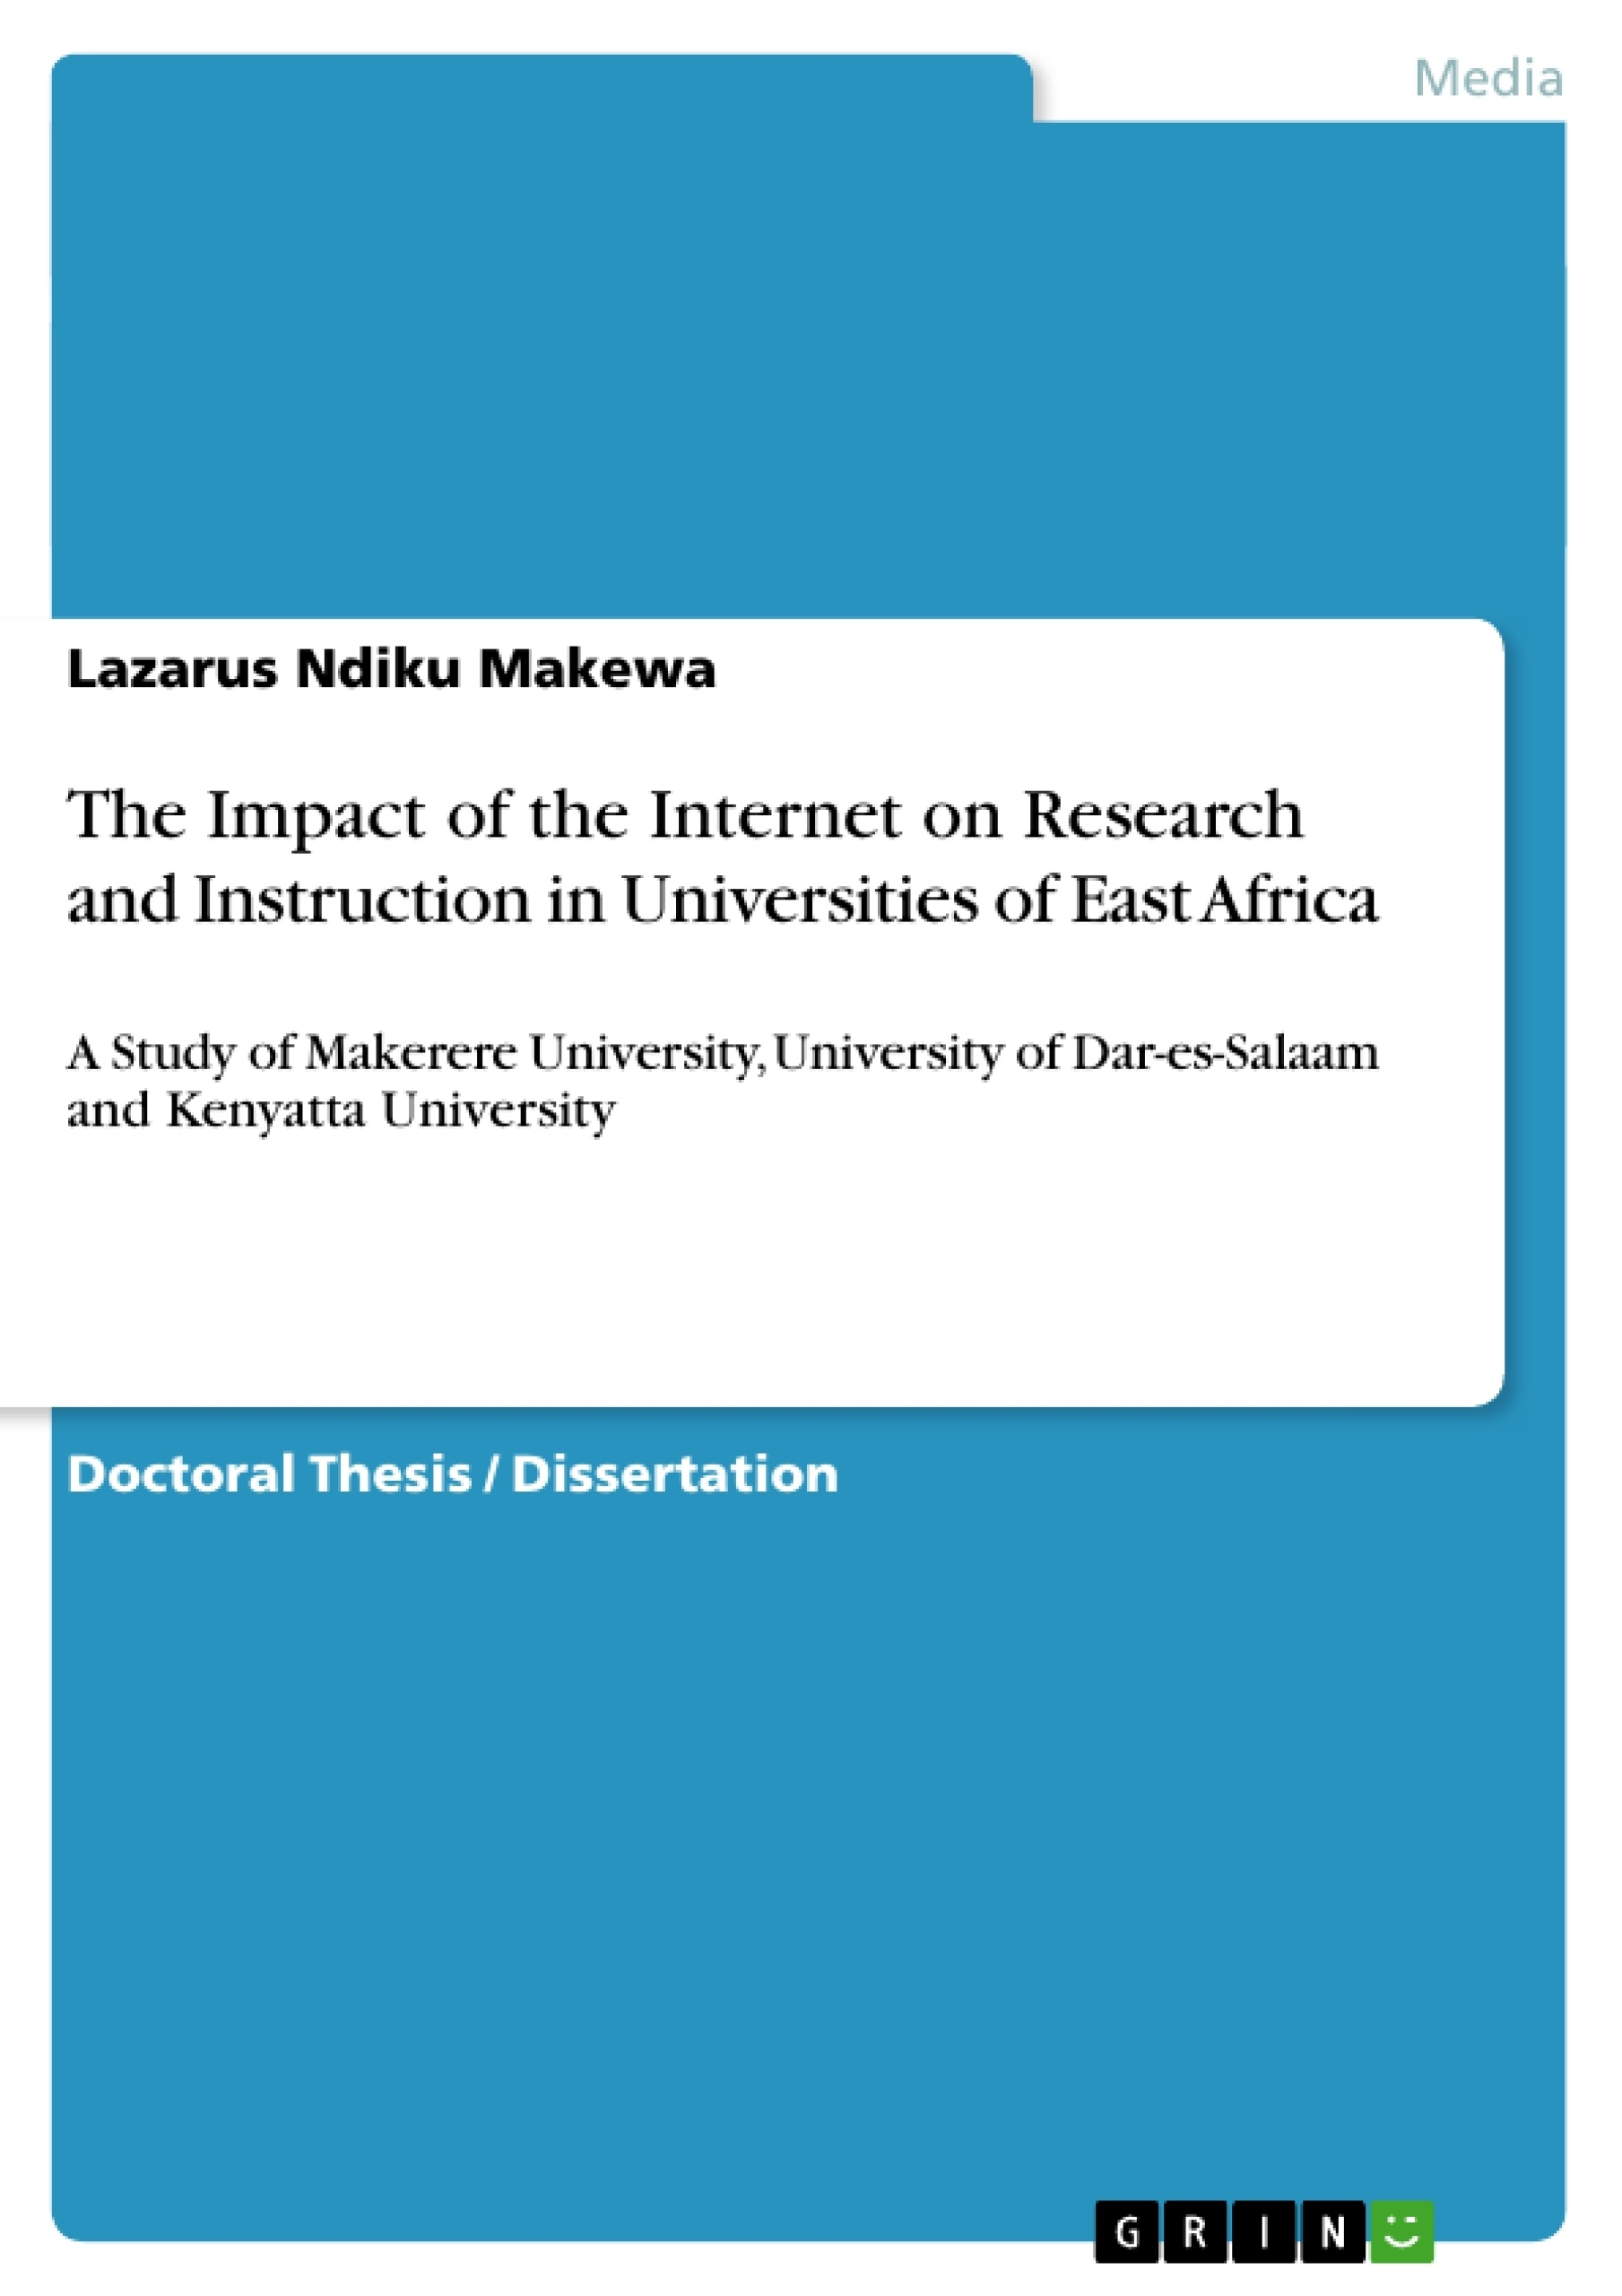 Title: The Impact of the Internet on Research and Instruction in Universities of East Africa